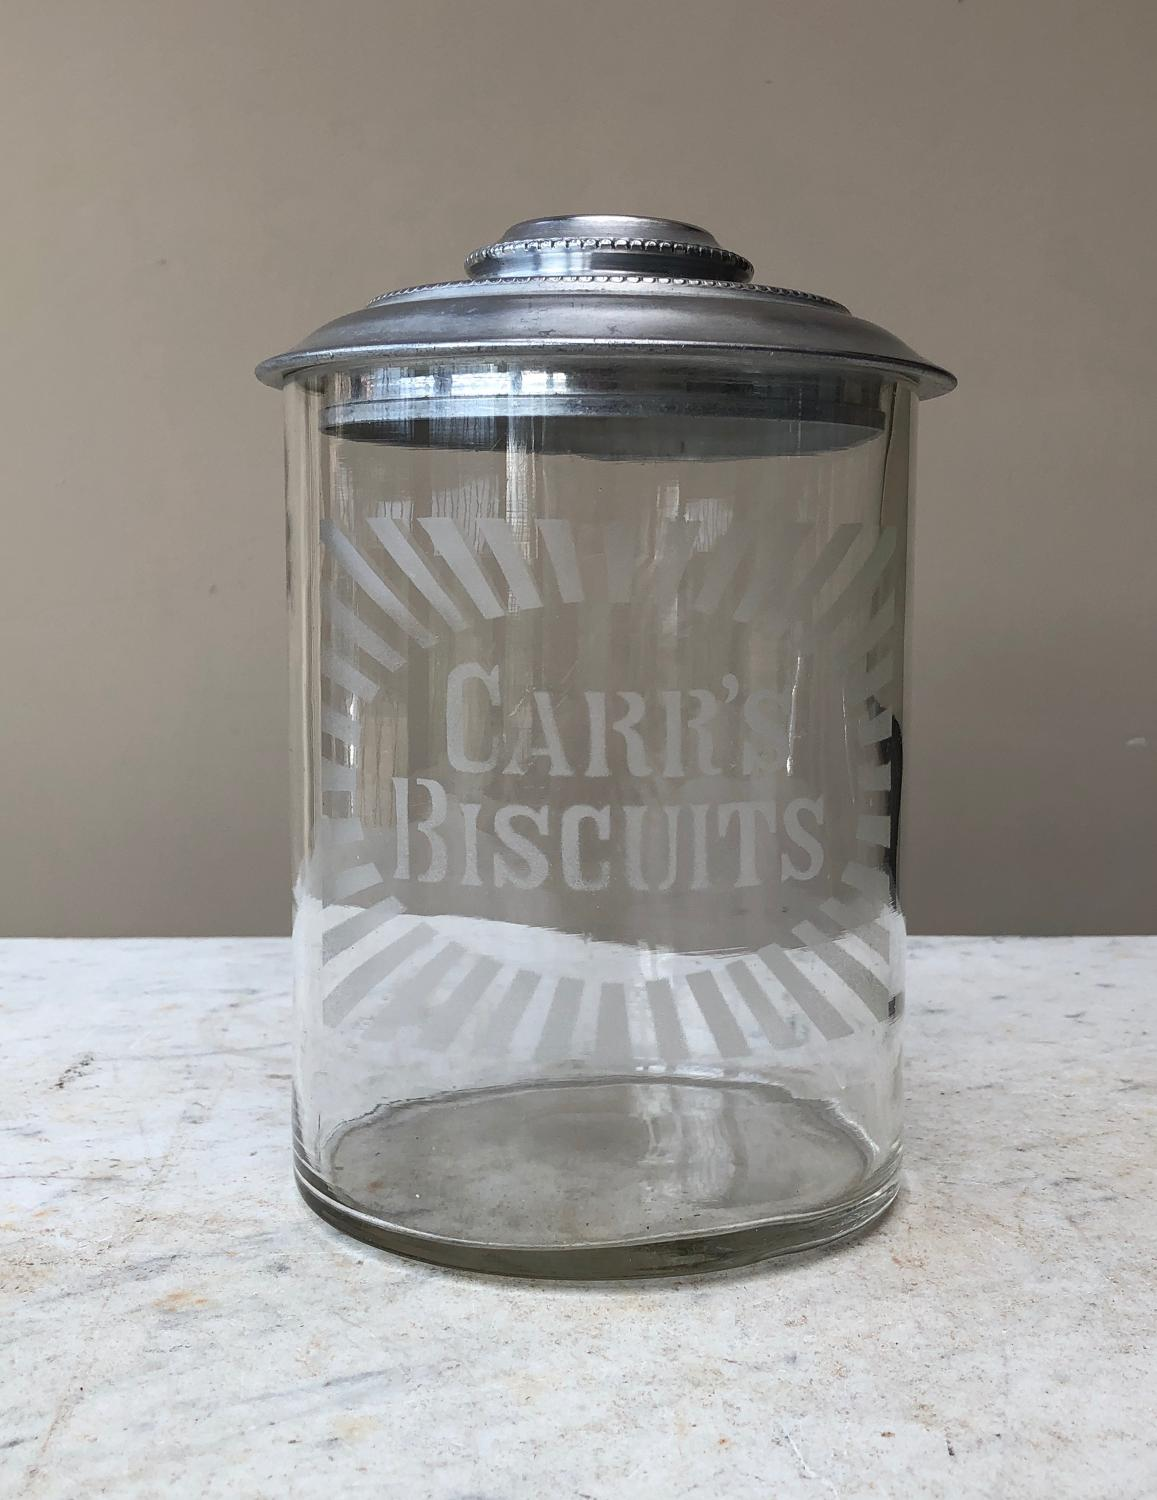 Early 20th Century Shops Glass Advertising Jar - Carrs Biscuits